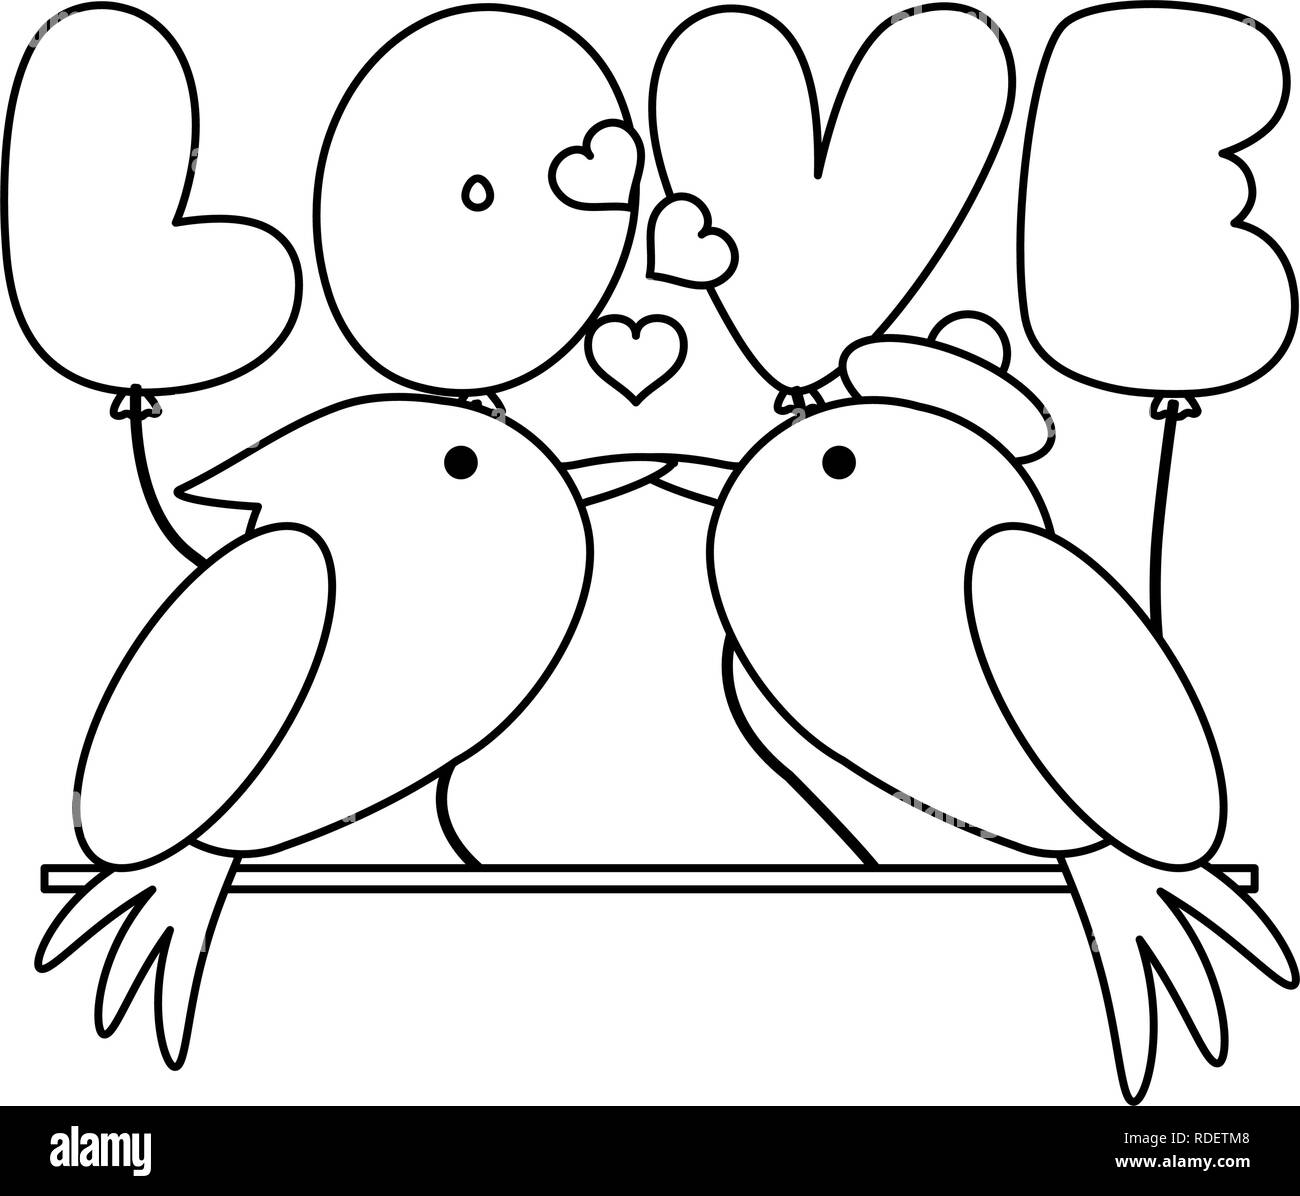 Love Birds Black And White Stock Photos Images Alamy